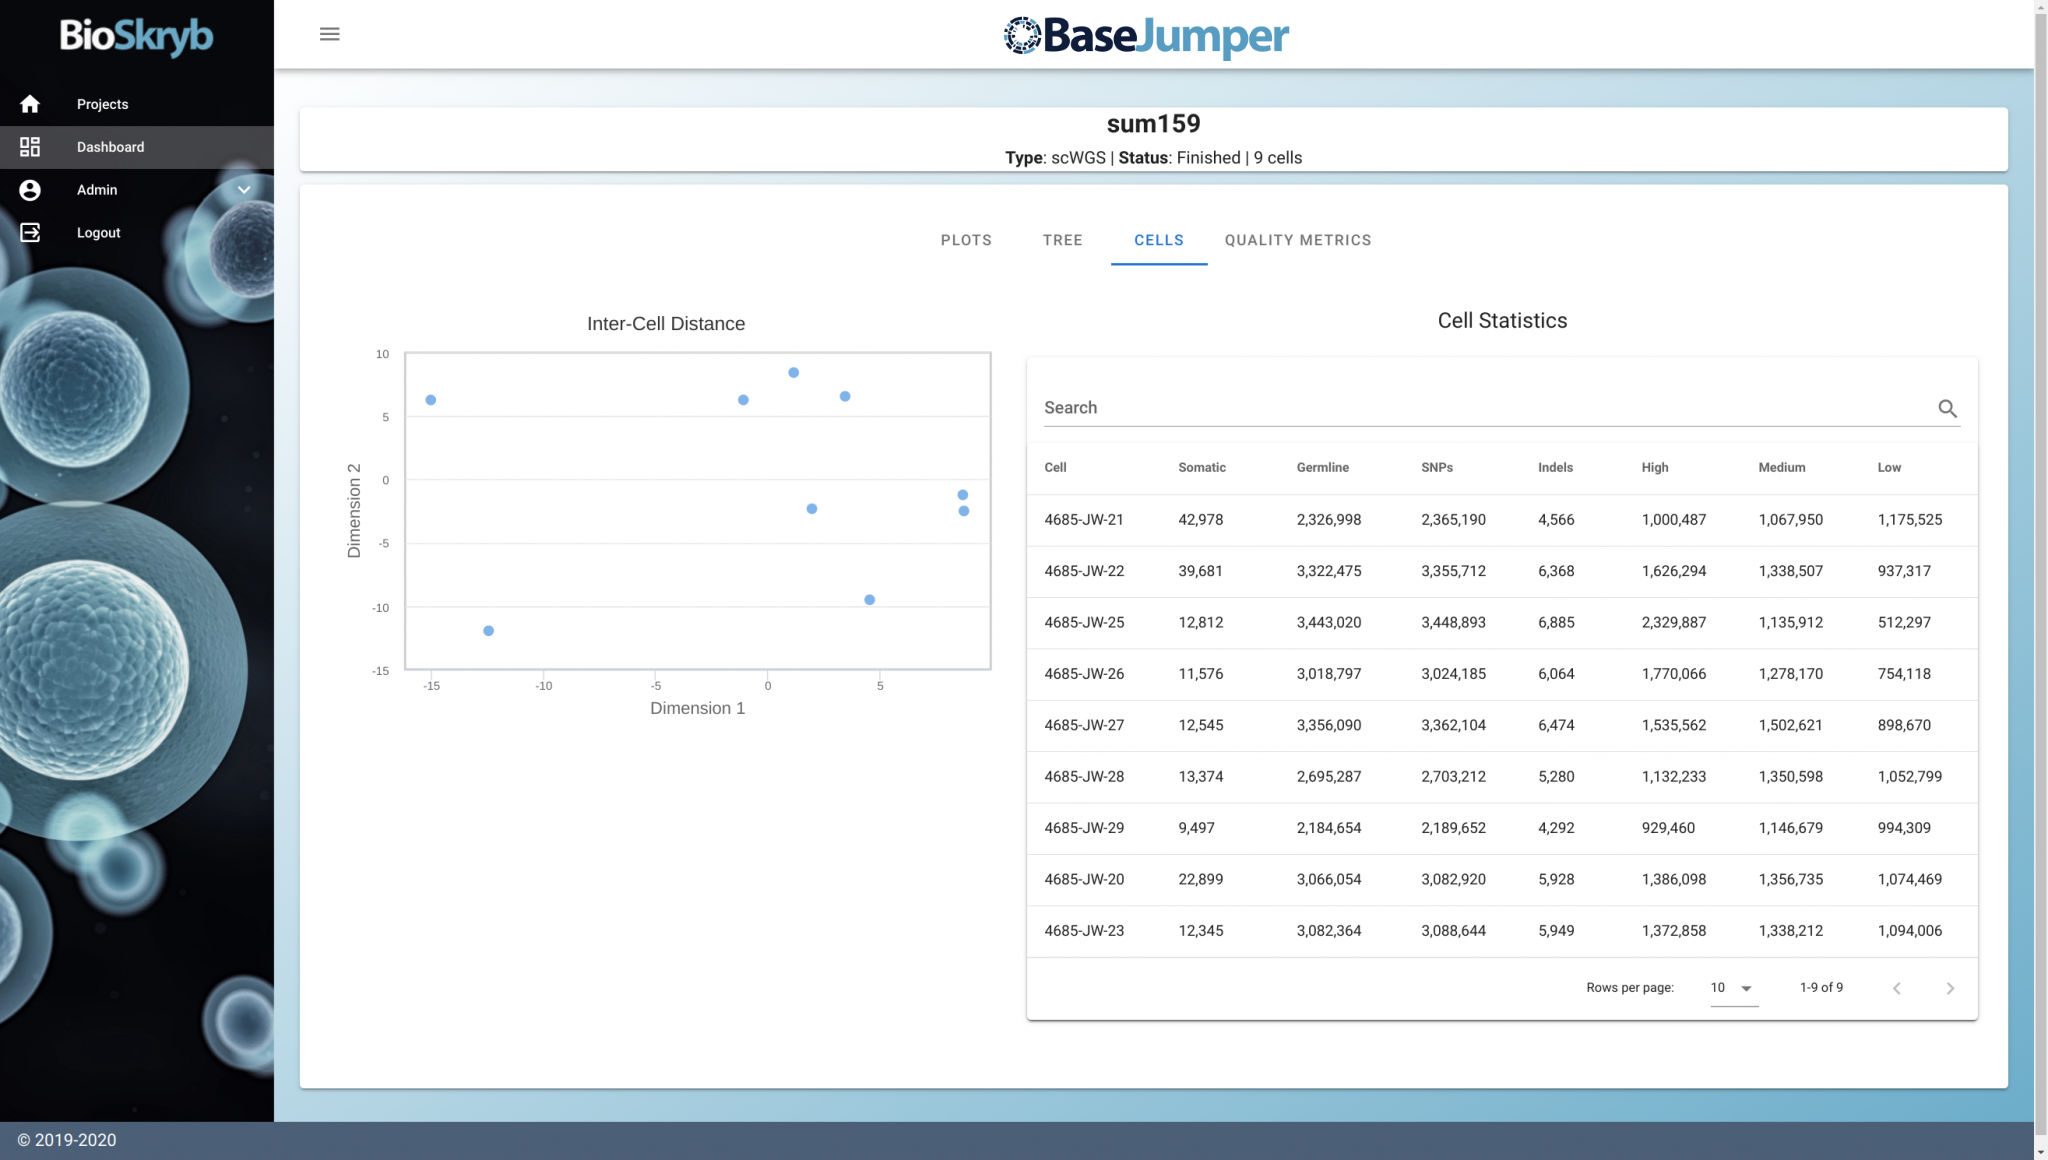 BaseJumper Bioinformatics Platform significantly shortens the time between data generation and insights